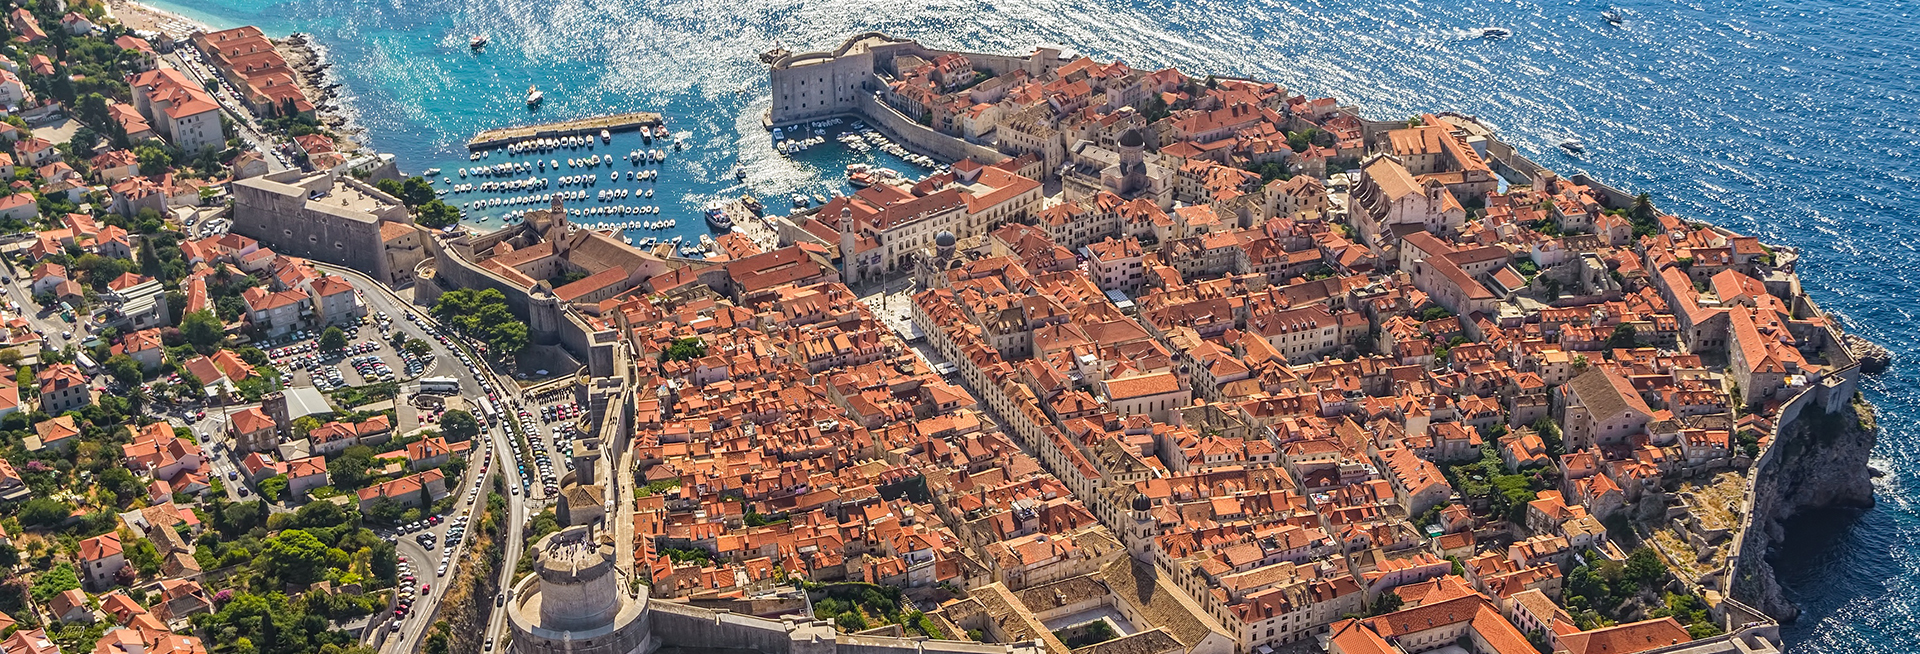 Game of Thrones & Dubrovnik Tour